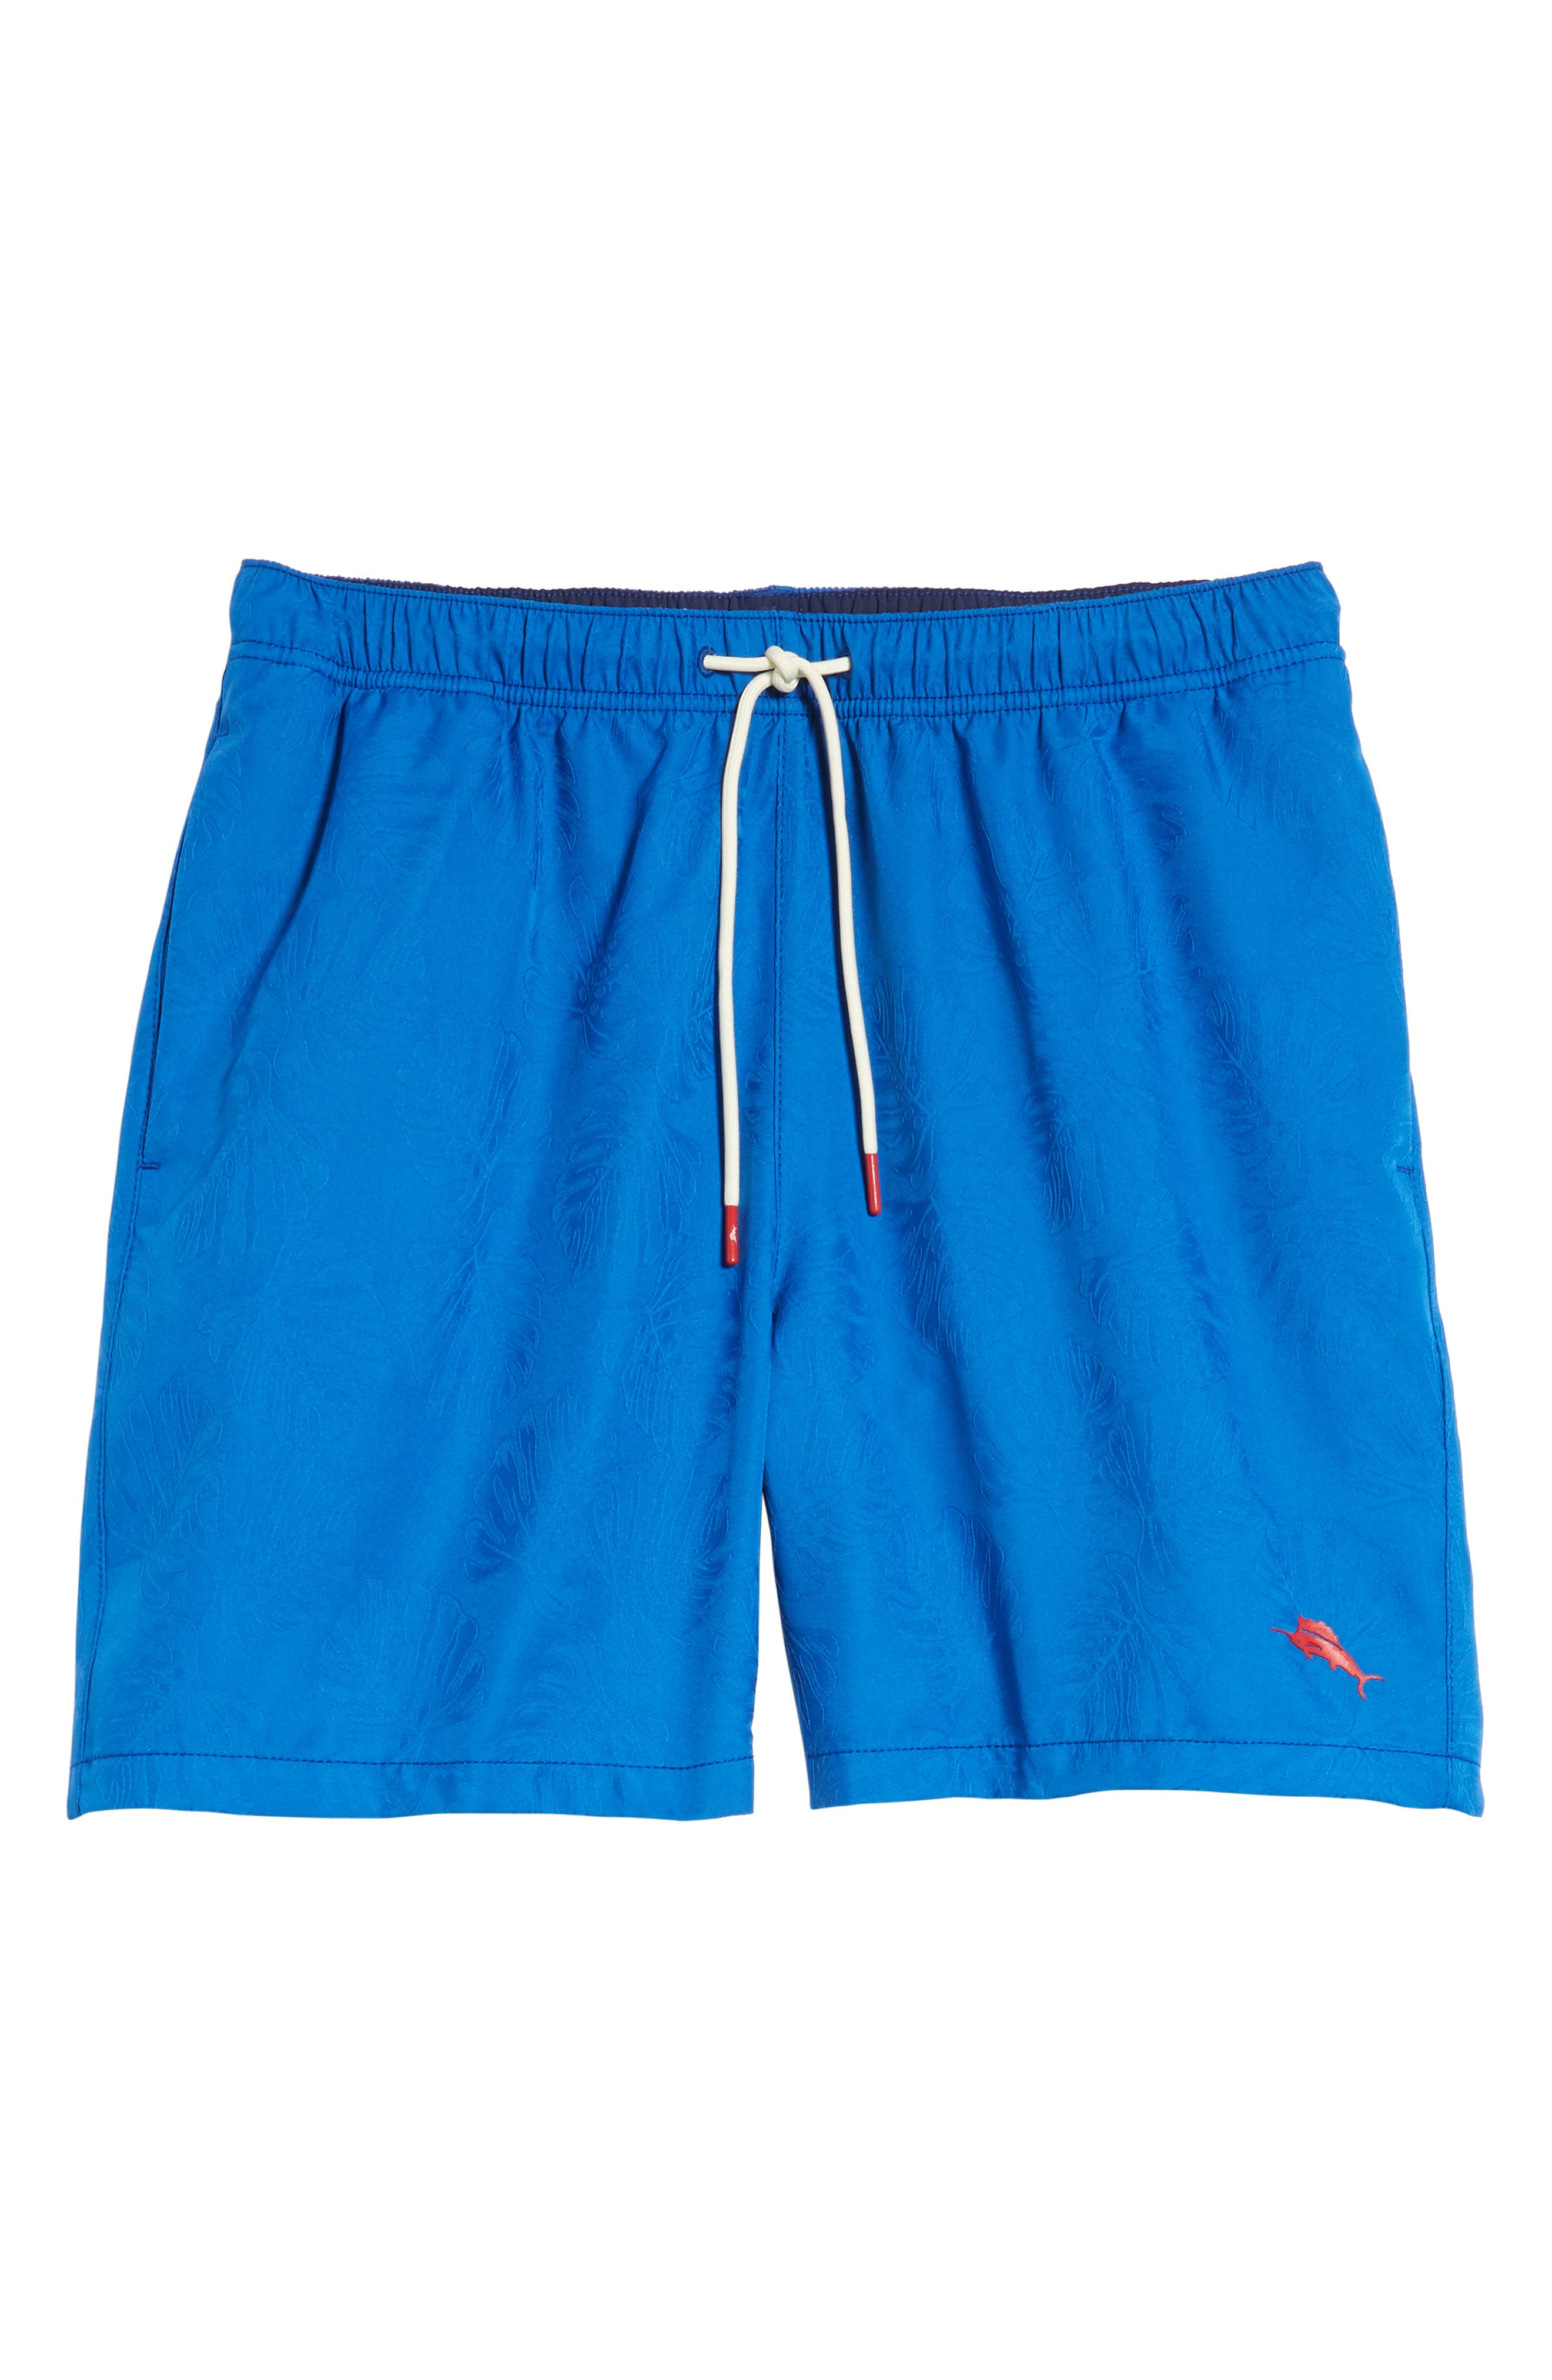 Naples Midnight Monstera Swim Trunks,                             Alternate thumbnail 6, color,                             Cobalt Sea